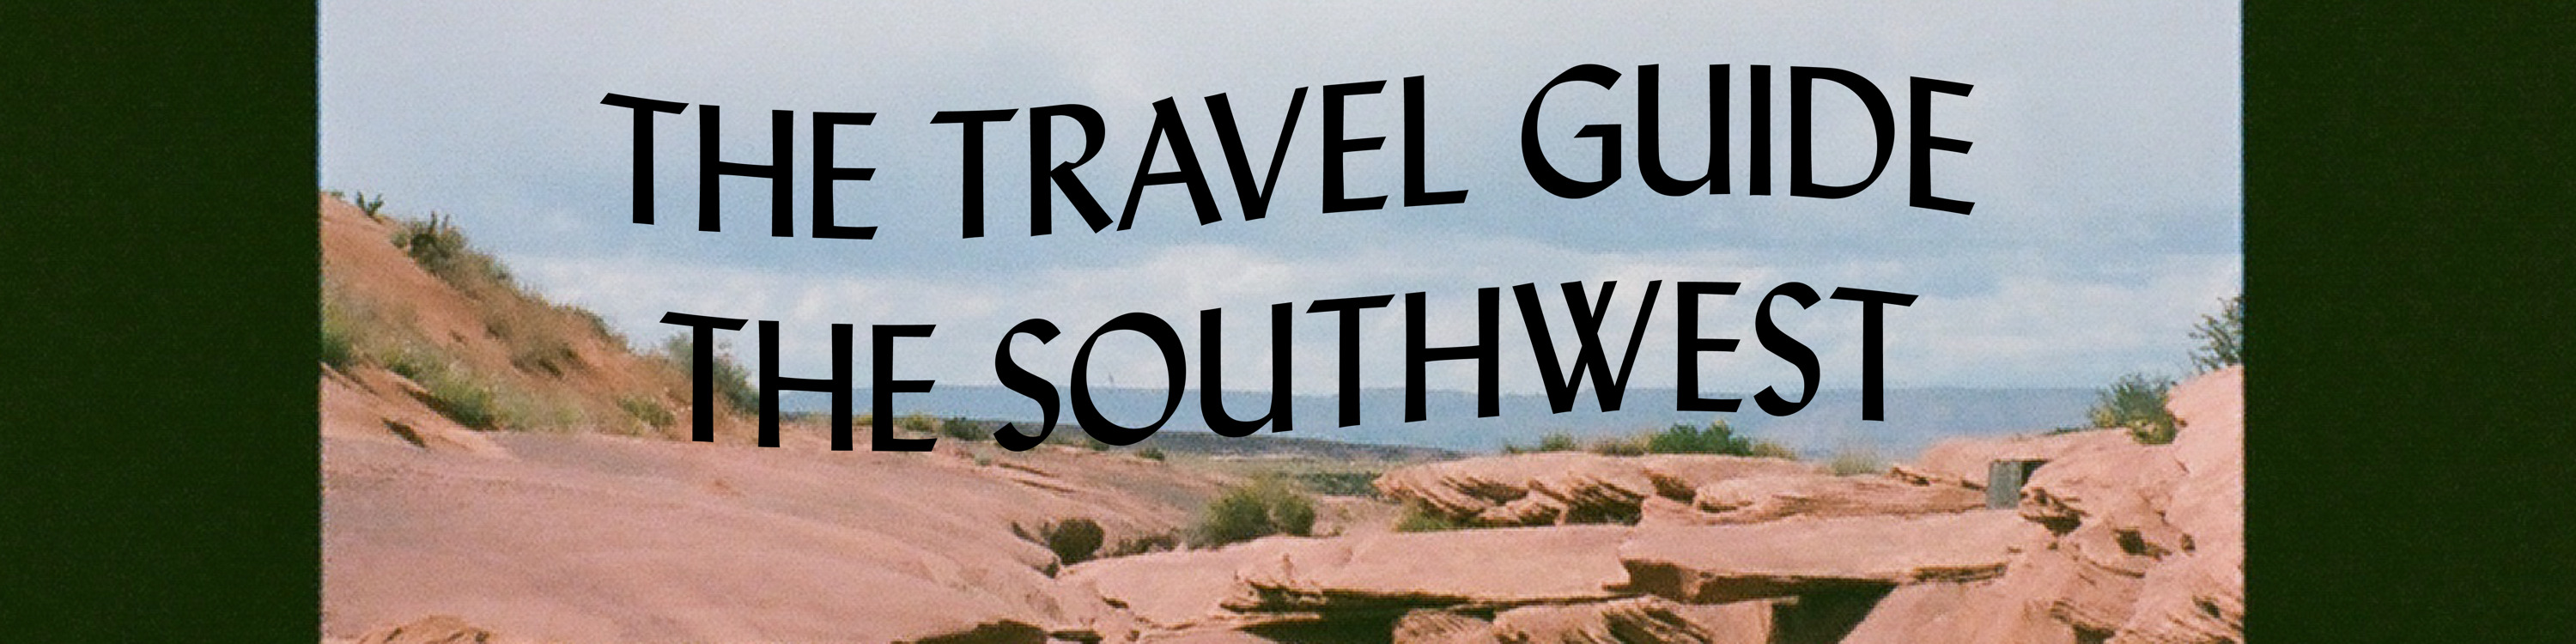 The Travel Guide The Southwest